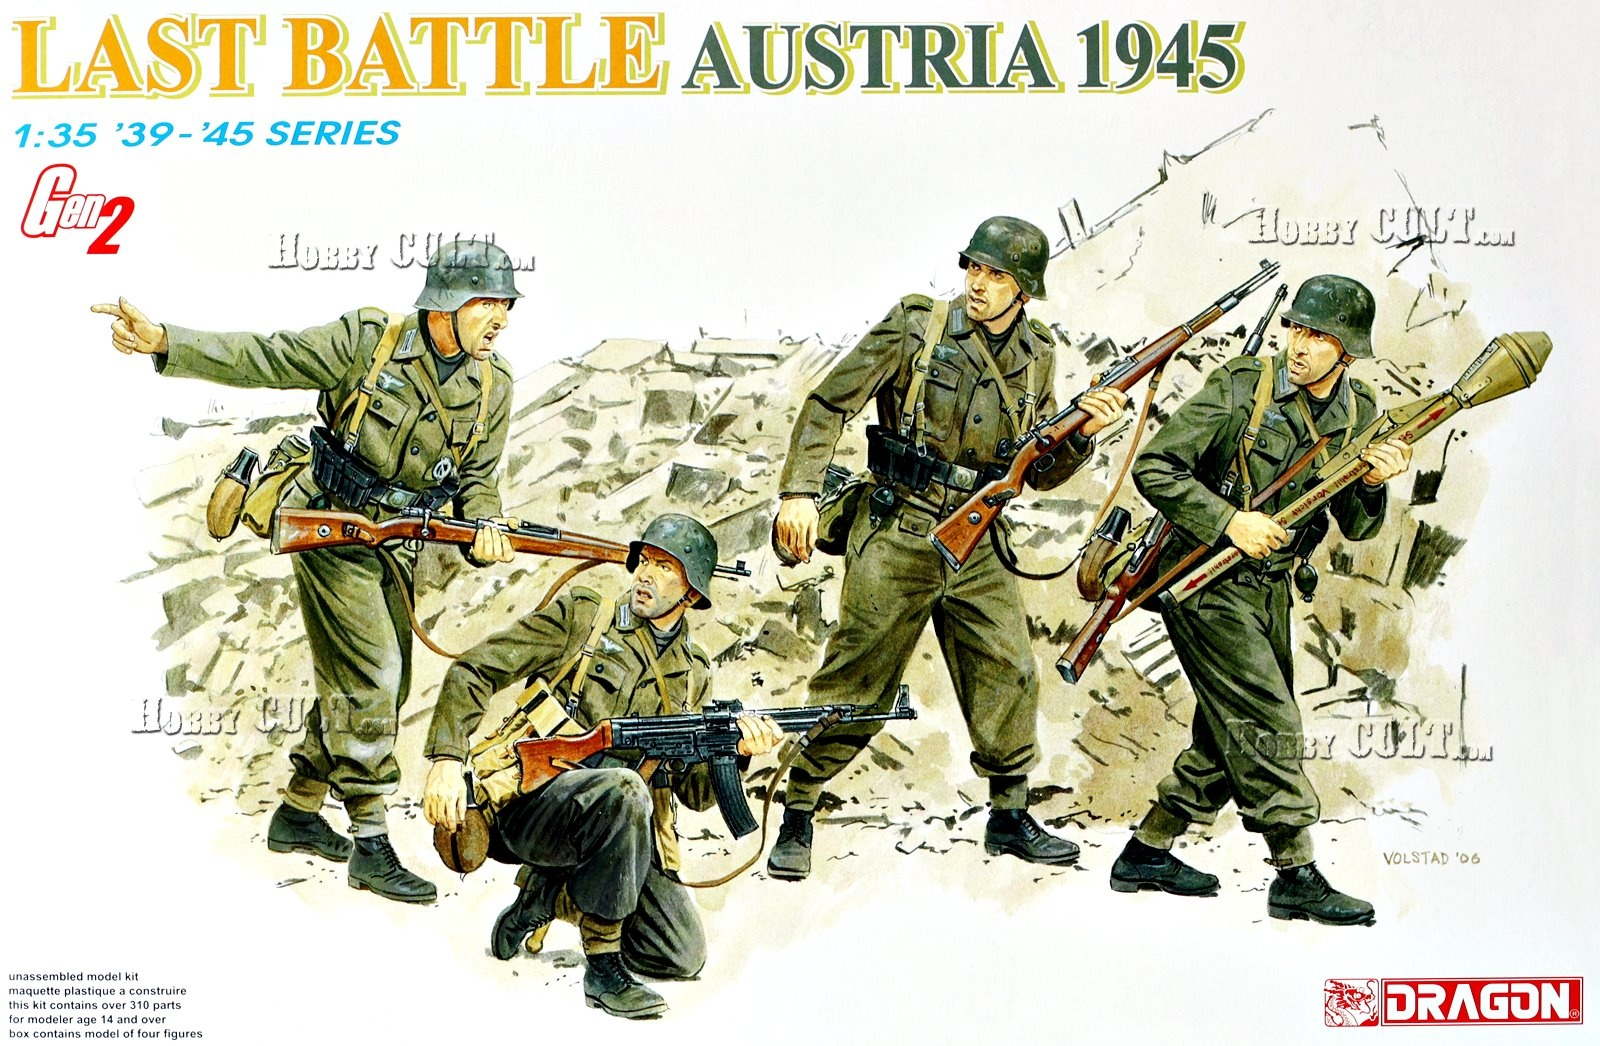 1:35 Last Battle, Austria 1945 (Gen2 Figures)